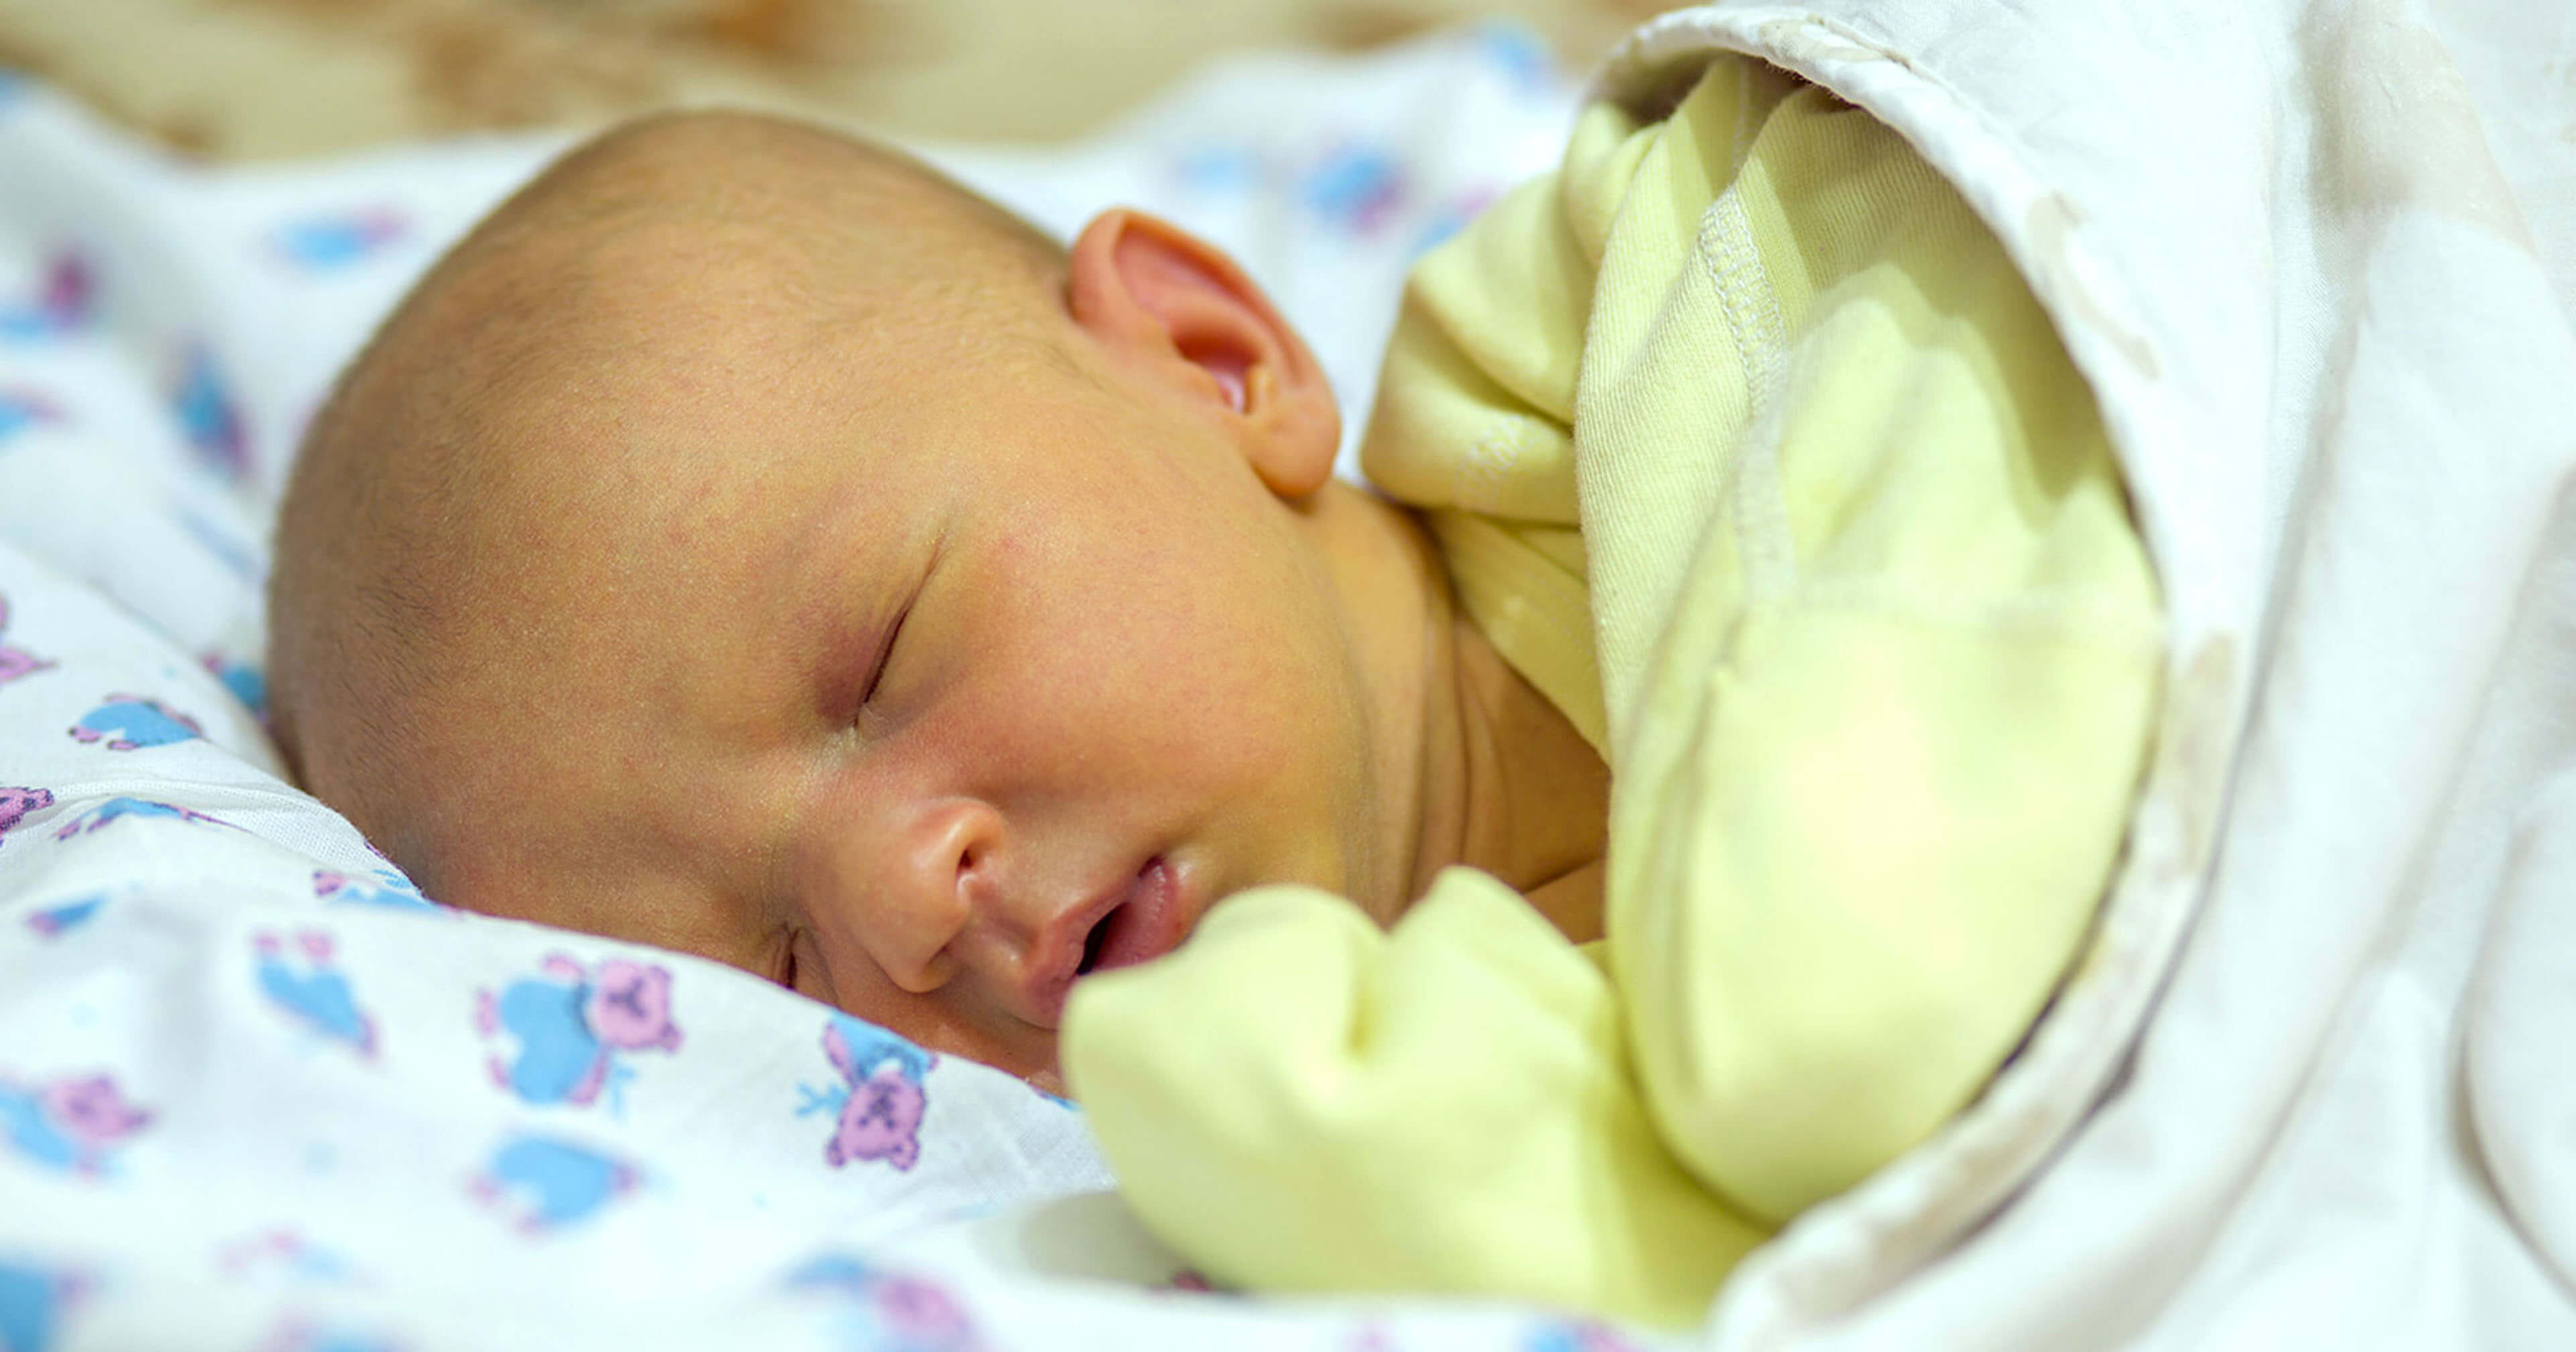 Newborn Babies Jaundice Treatment Natural Ways To Treat Jaundice In Newborn Babies